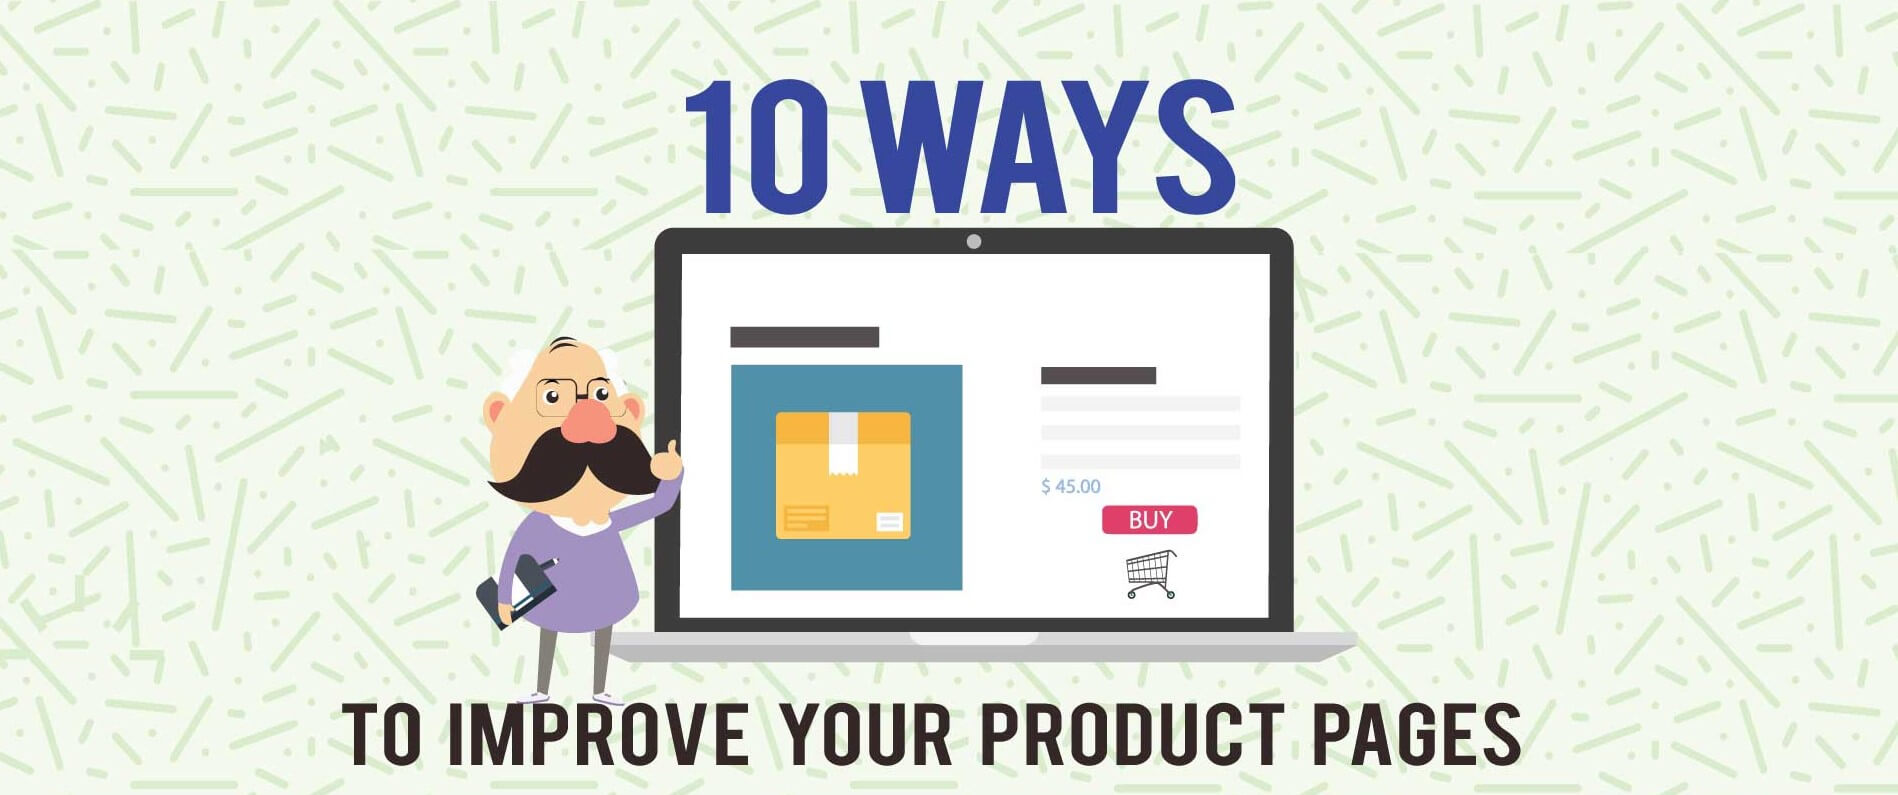 Product page infographic